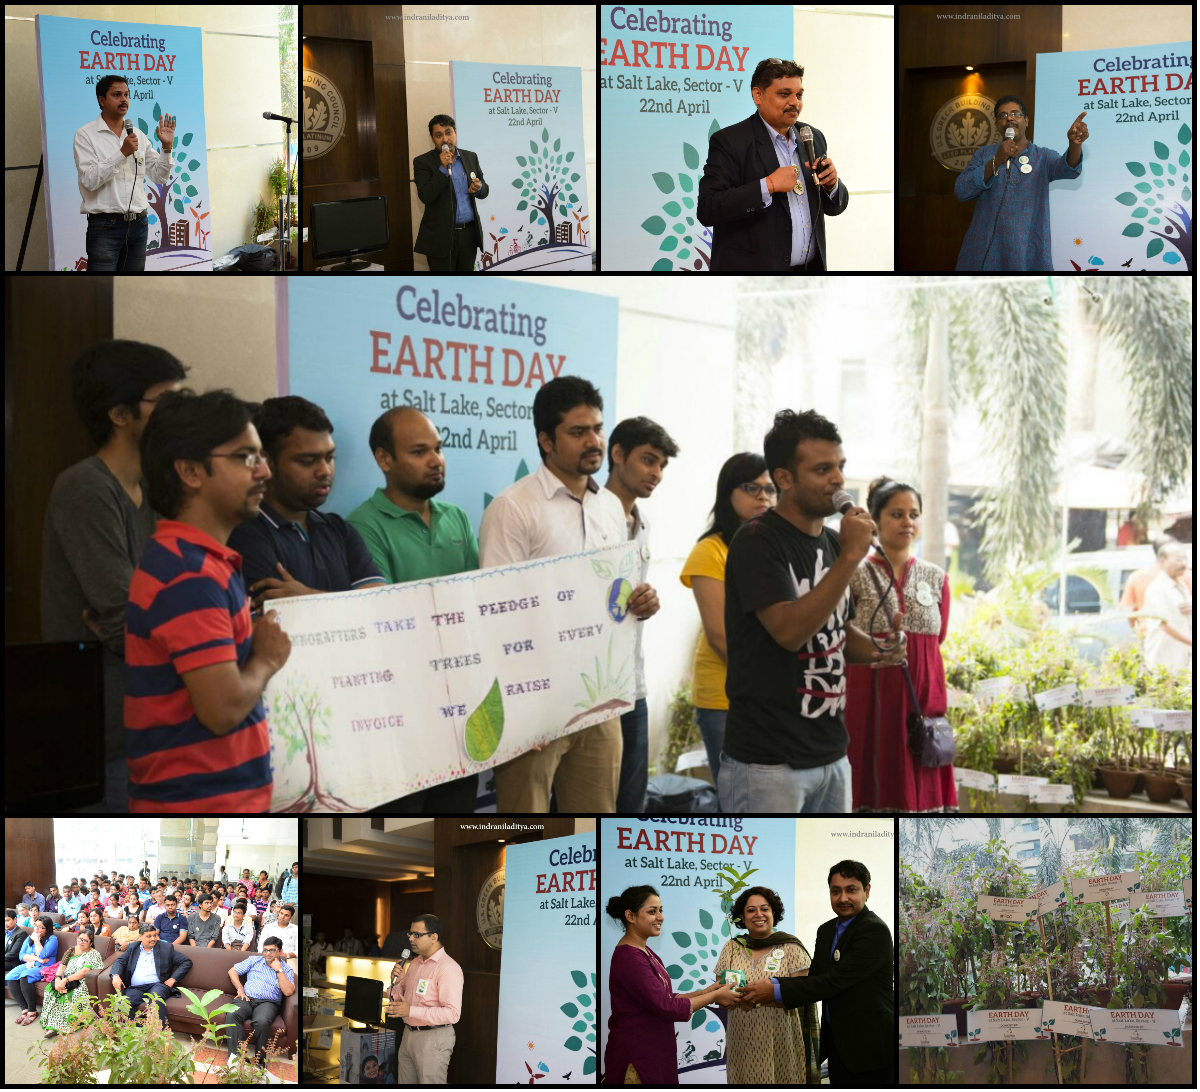 The Earth Day event at Salt Lake Sector V